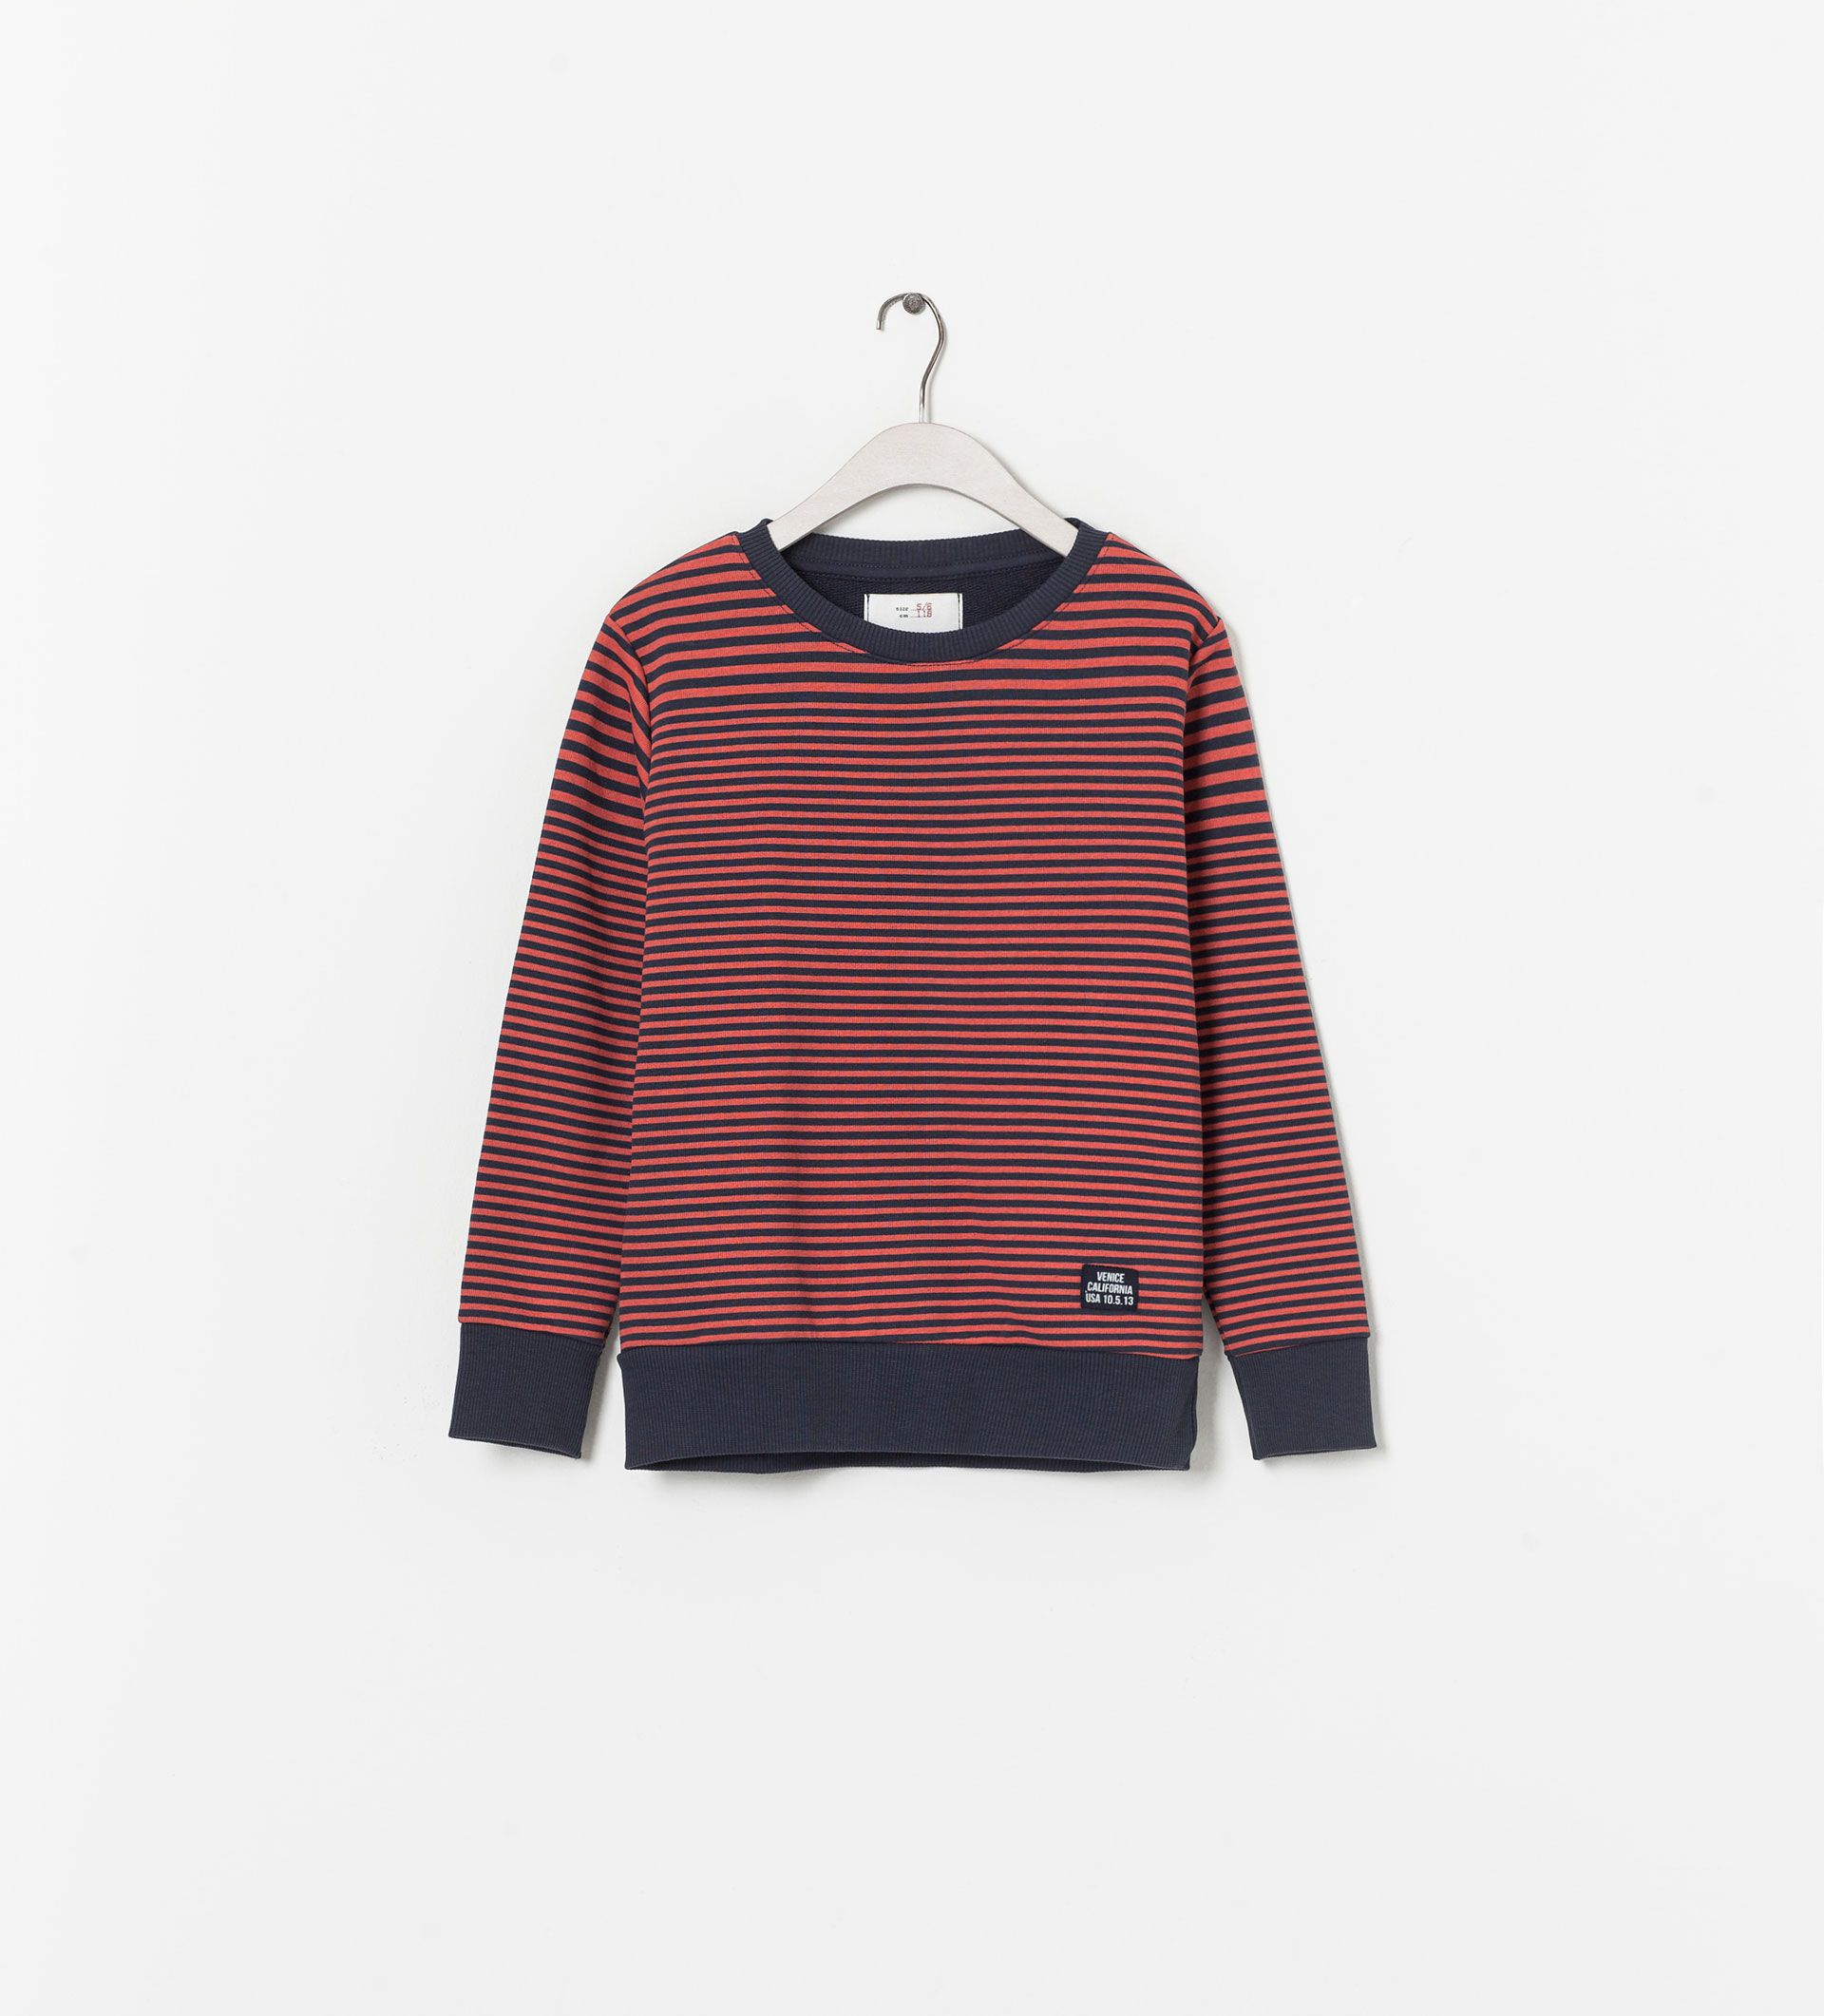 ZARA - KIDS - STRIPED SWEATER WITH ELBOW PATCHES